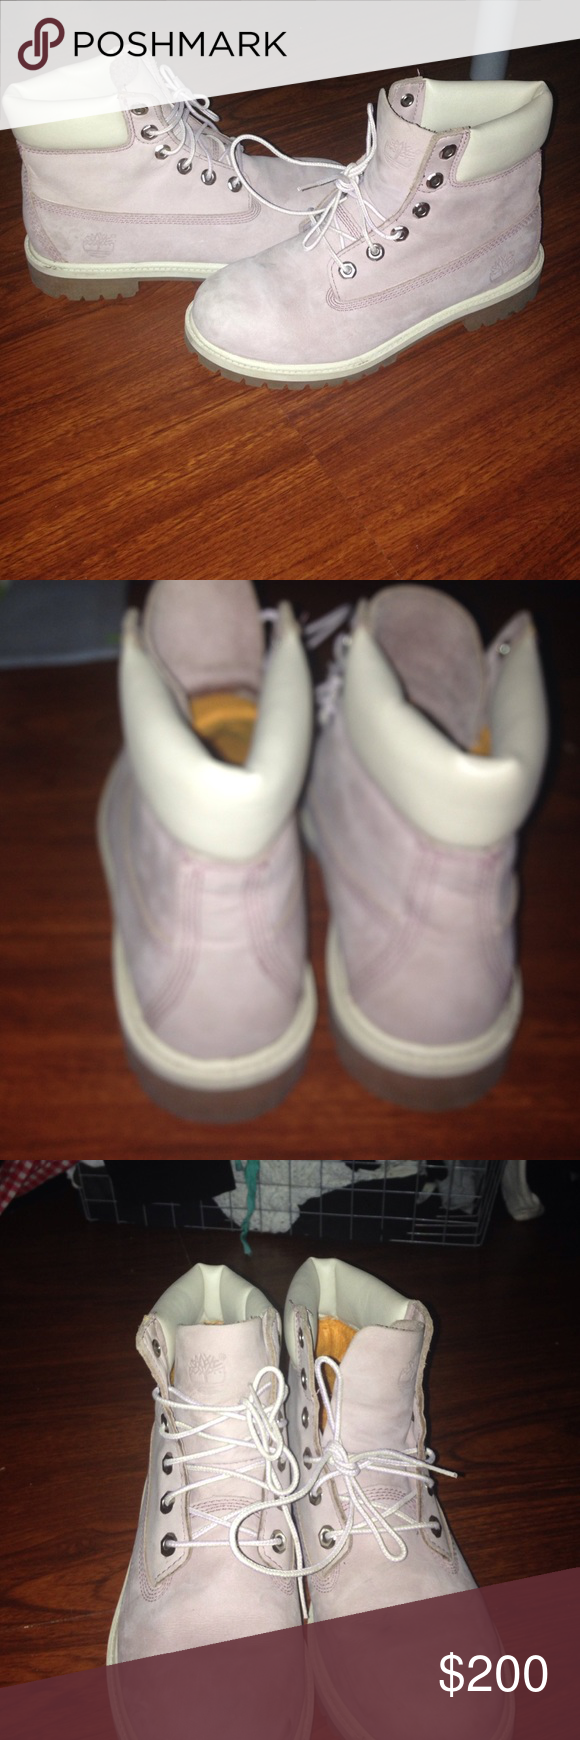 Lavender Timberland Boots These boots are in great condition, they were only worn once or twice. They are a size 6 in junior, which is a 39 in European shoe sizes, and a US women's size 8. They are also very stylish! Timberland Shoes Boots